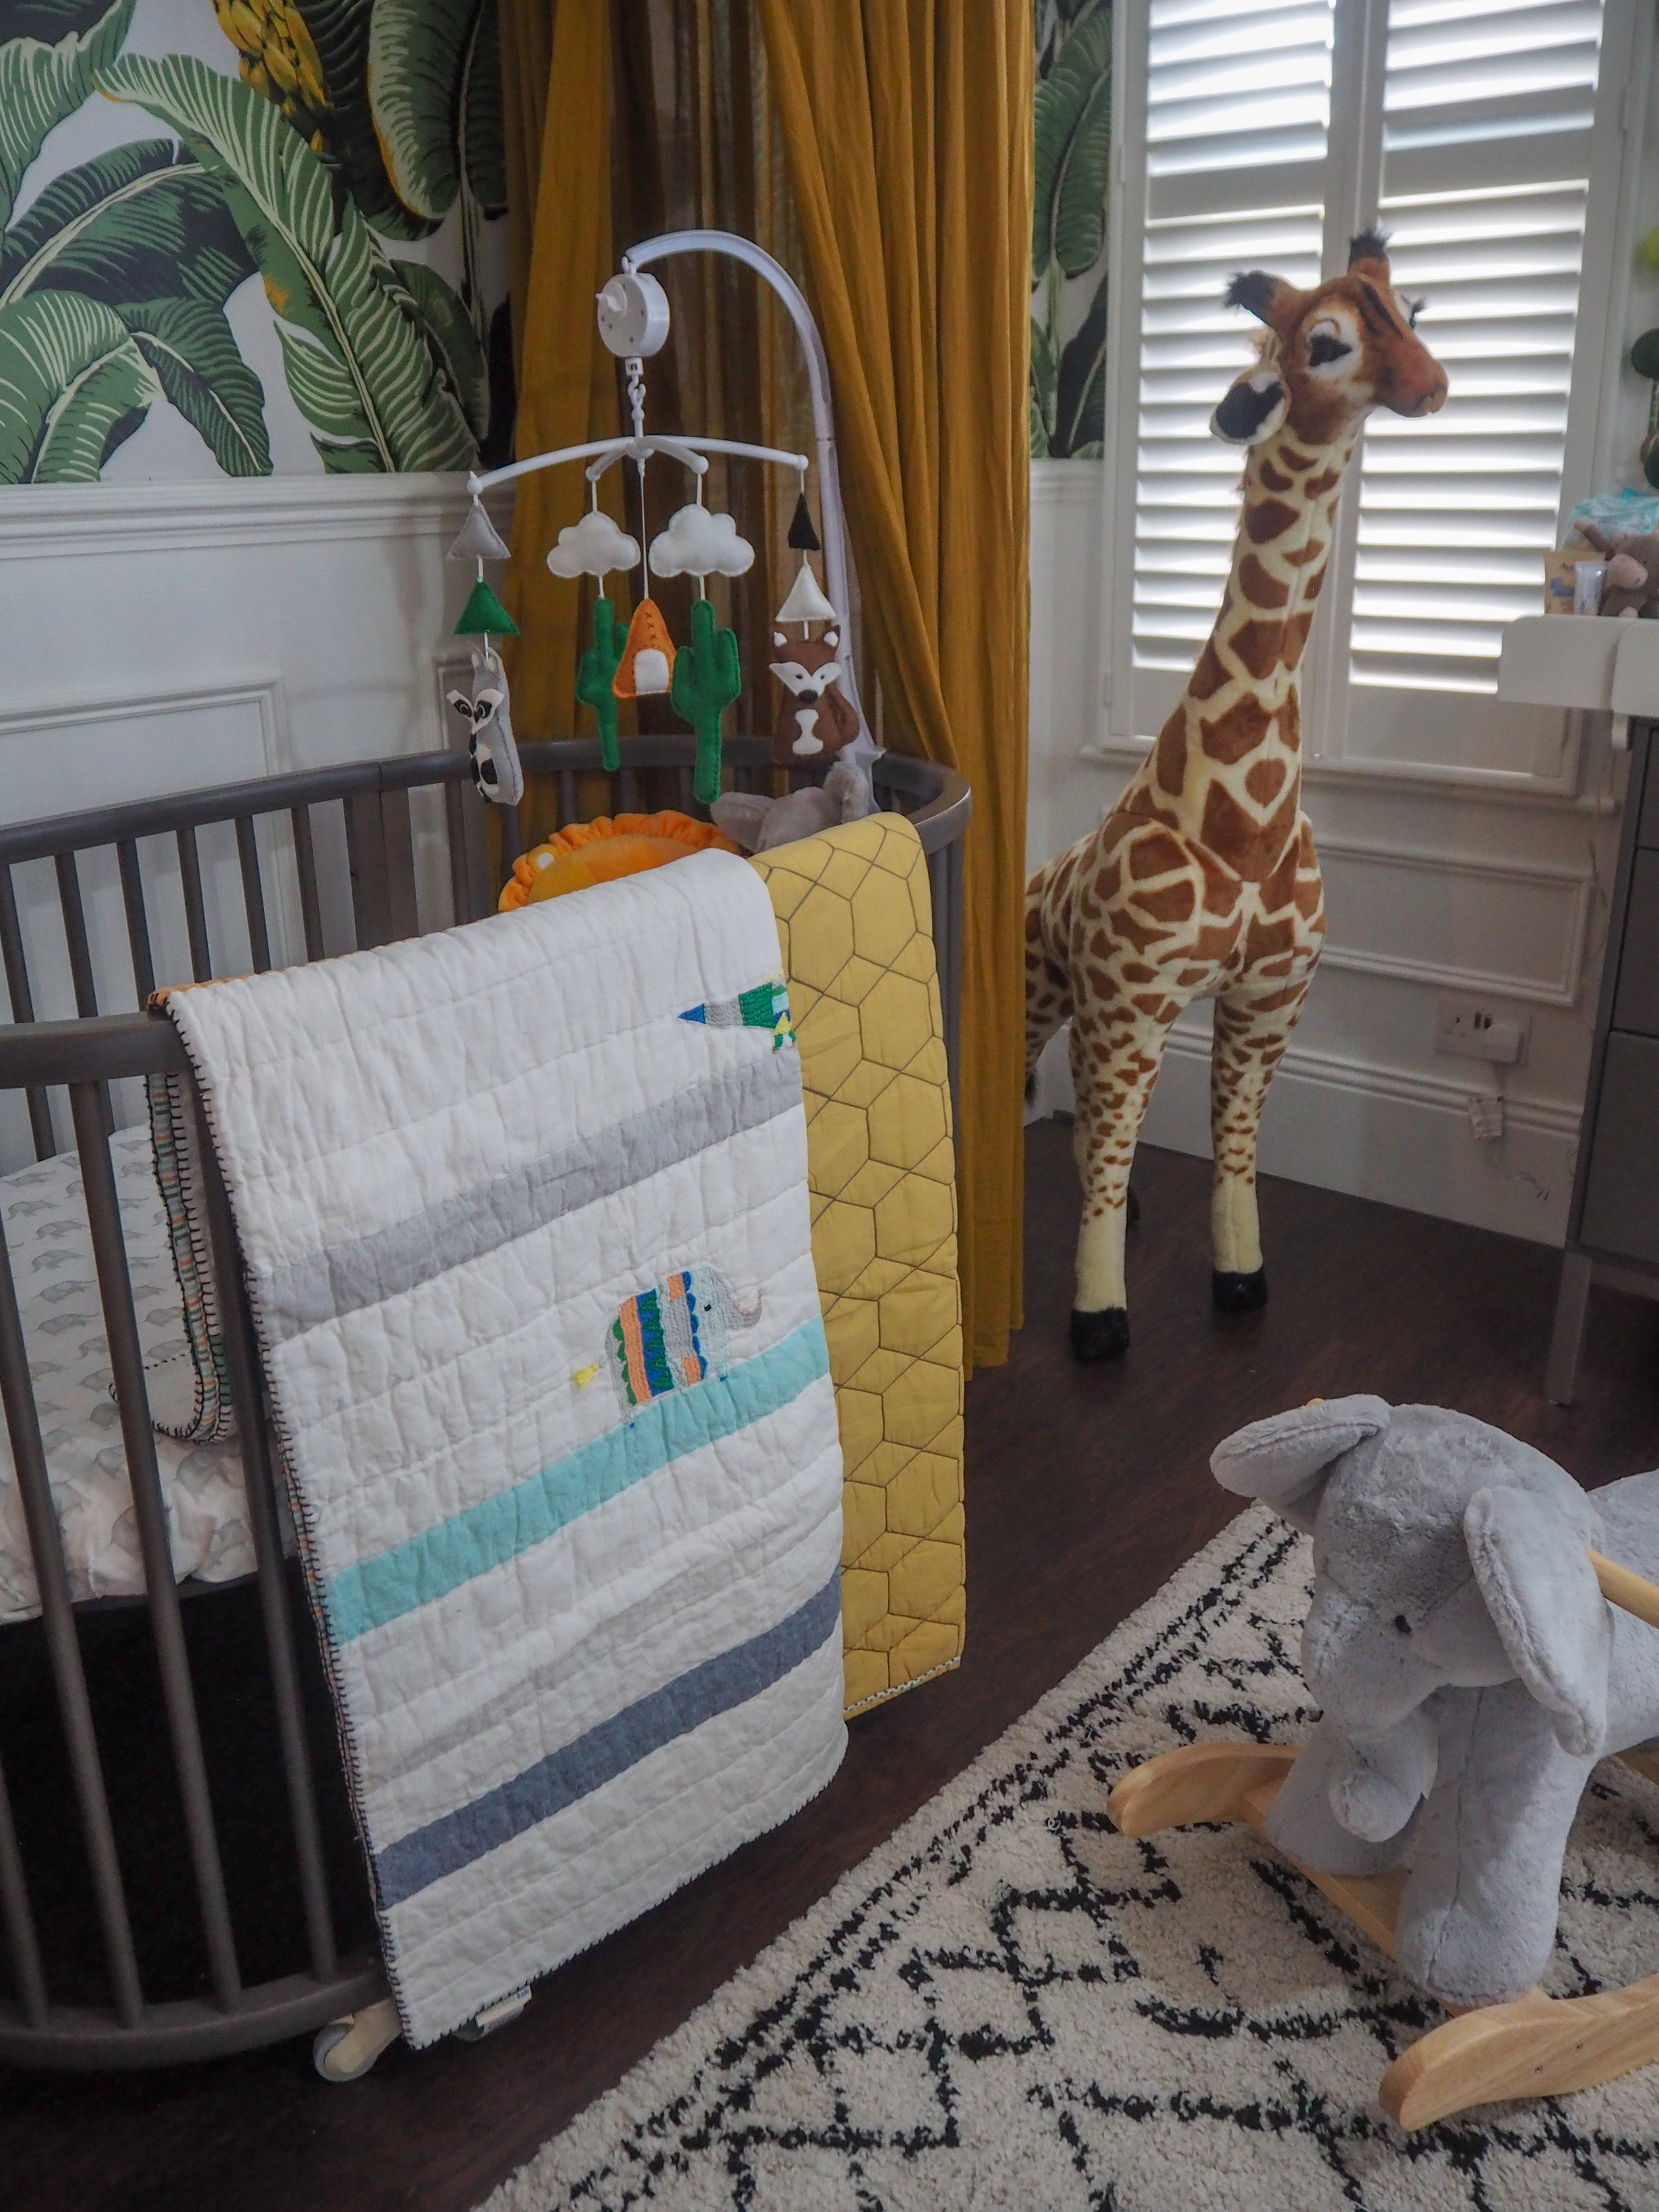 Colby Animal Baby    quilt  £149 from Pottery barn kids;   Honeycomb Baby Bed Linen     £79 from Pottery barn kids;   Melissa & Doug Plush Giraffe   £84.99 from Argos. Mobile made by my mum.